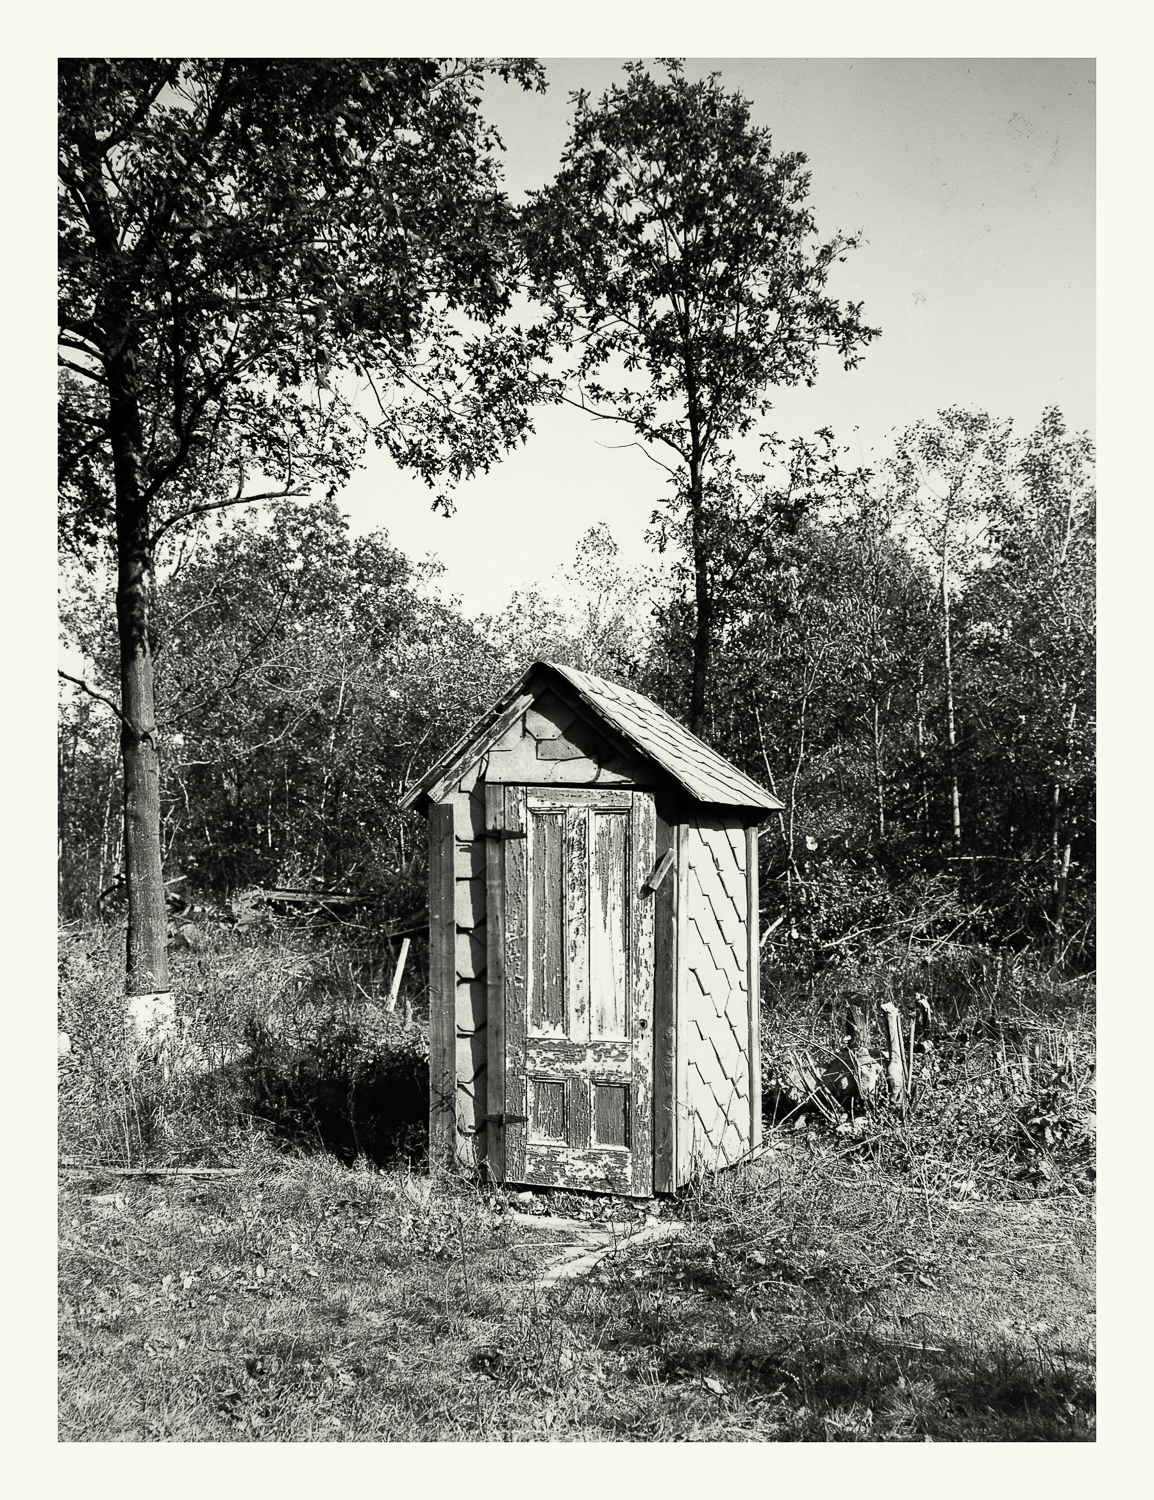 """Photograph No. PC 387. """"Photograph surveying shacks and shanties that were vacated and subsequently removed prior to the construction of the Cohasset Naval Ammunition Depot Annex."""" c. 1930; Records of Naval Districts and Shore Establishments, RG 181, NARA Boston."""